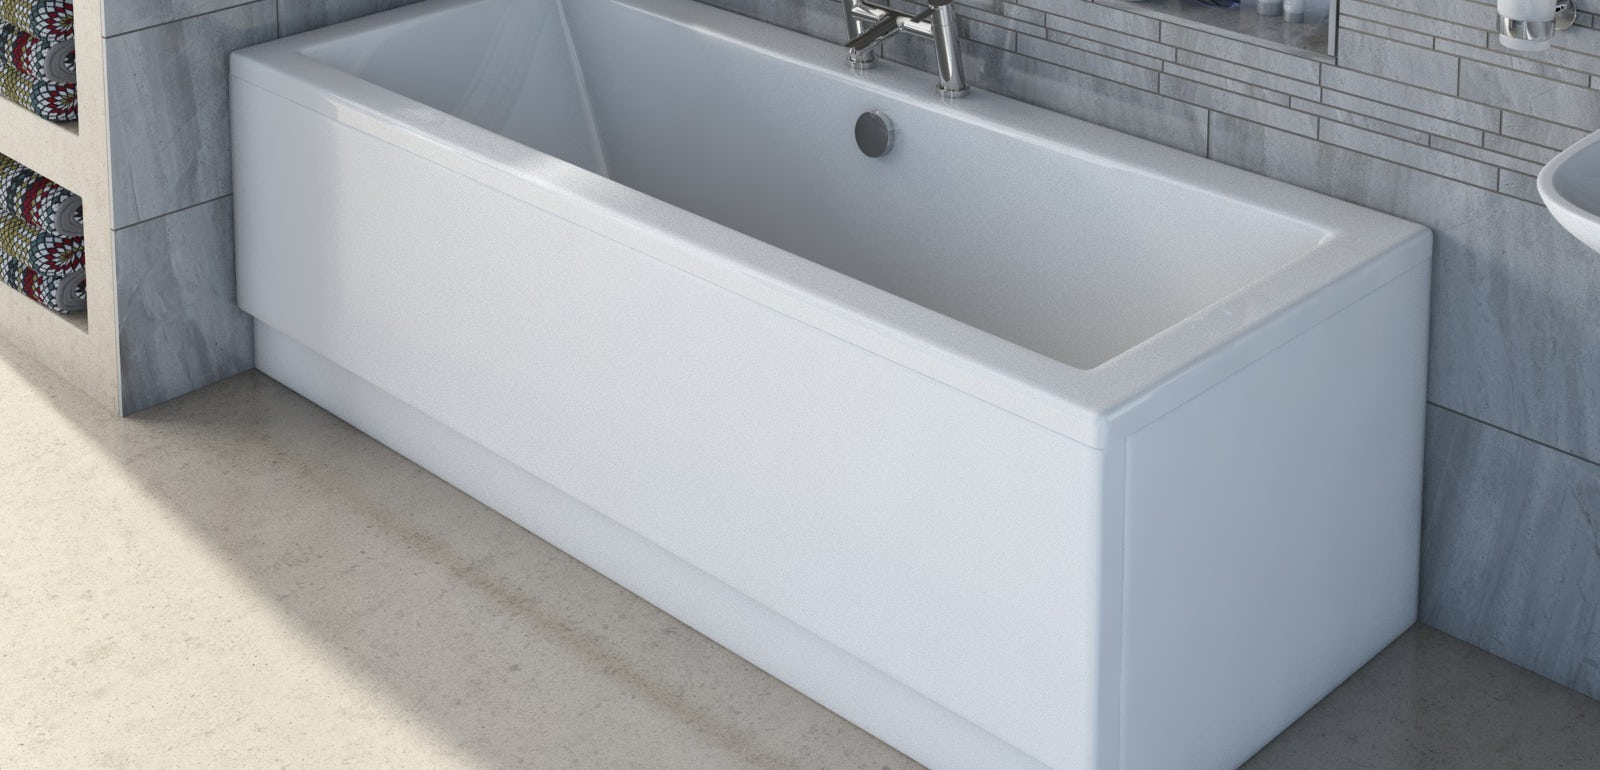 How to fit an acrylic bath panel | VictoriaPlum.com